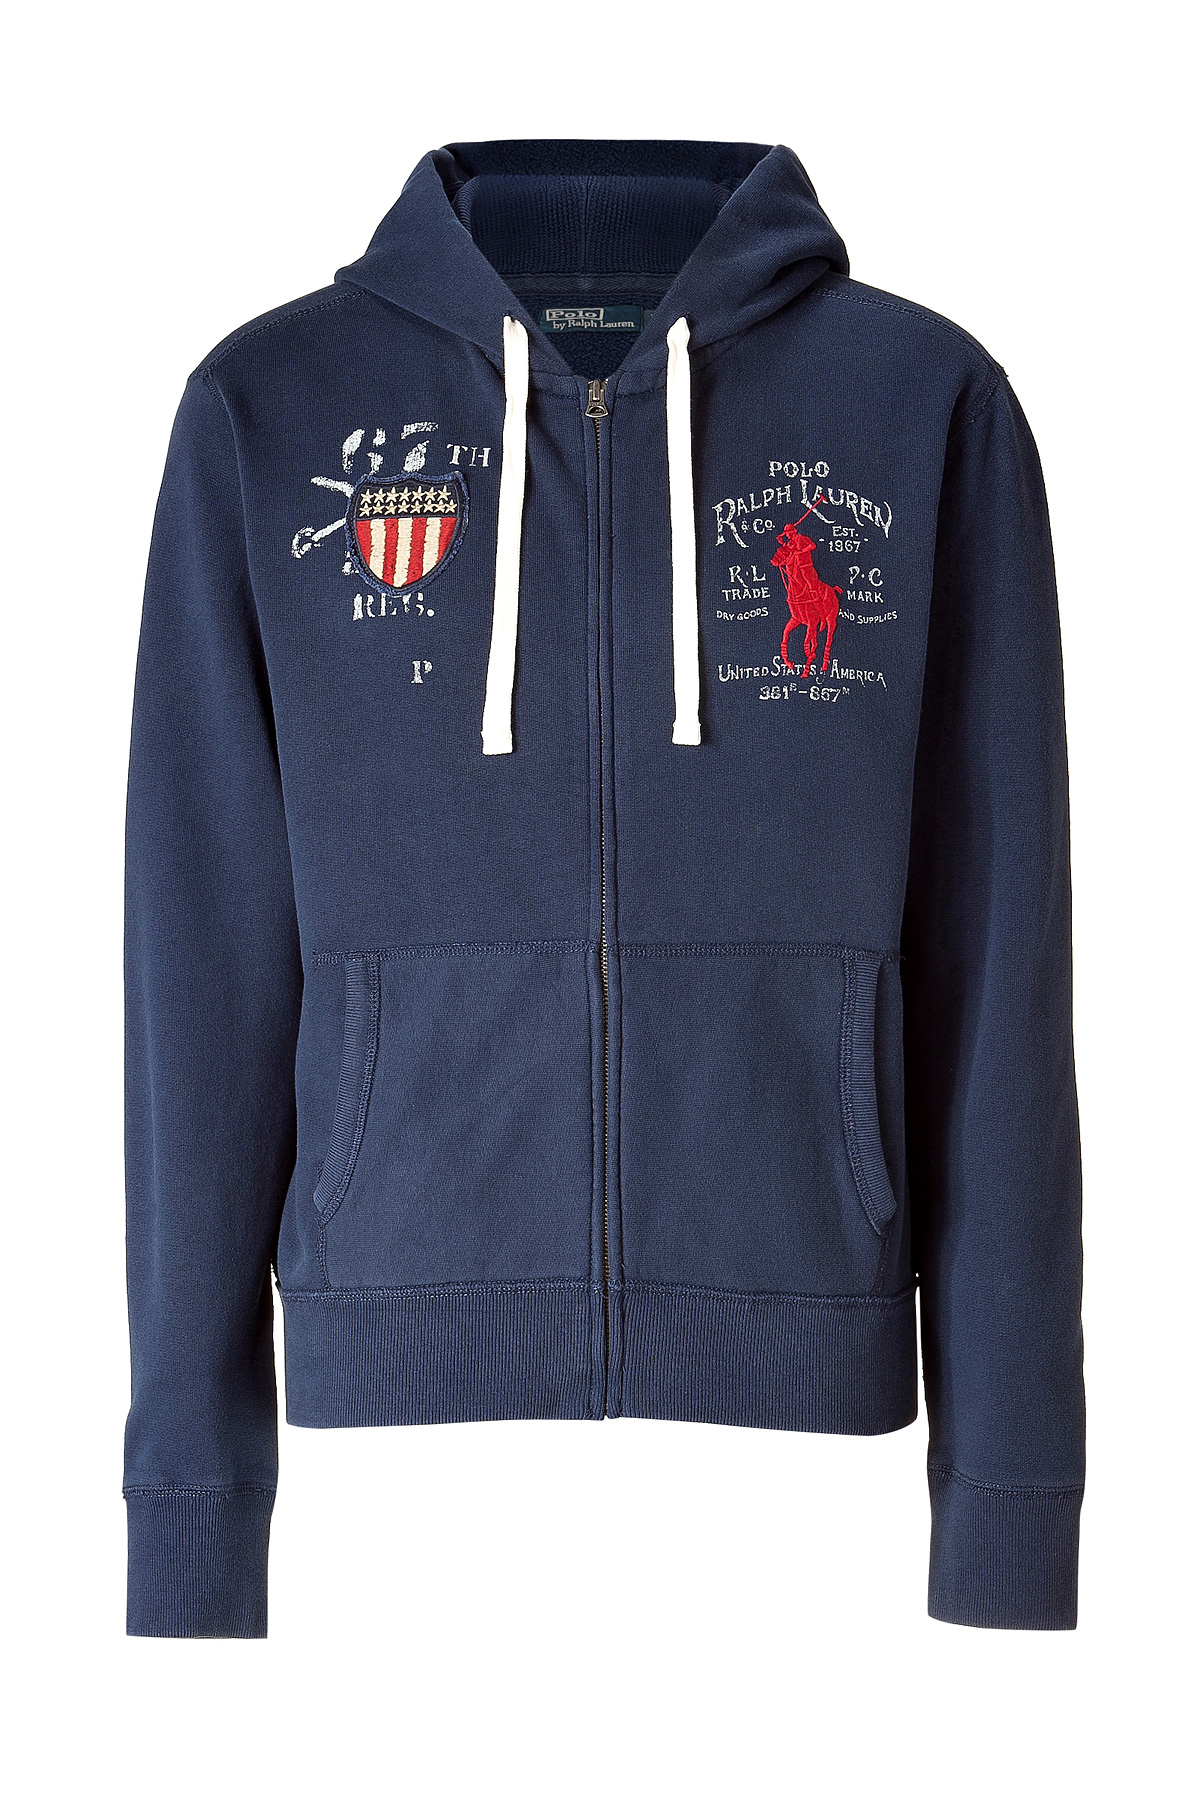 Polo Ralph Lauren Yankee Harbor Fleece Hoodie Jacket In Blue For Men | Lyst